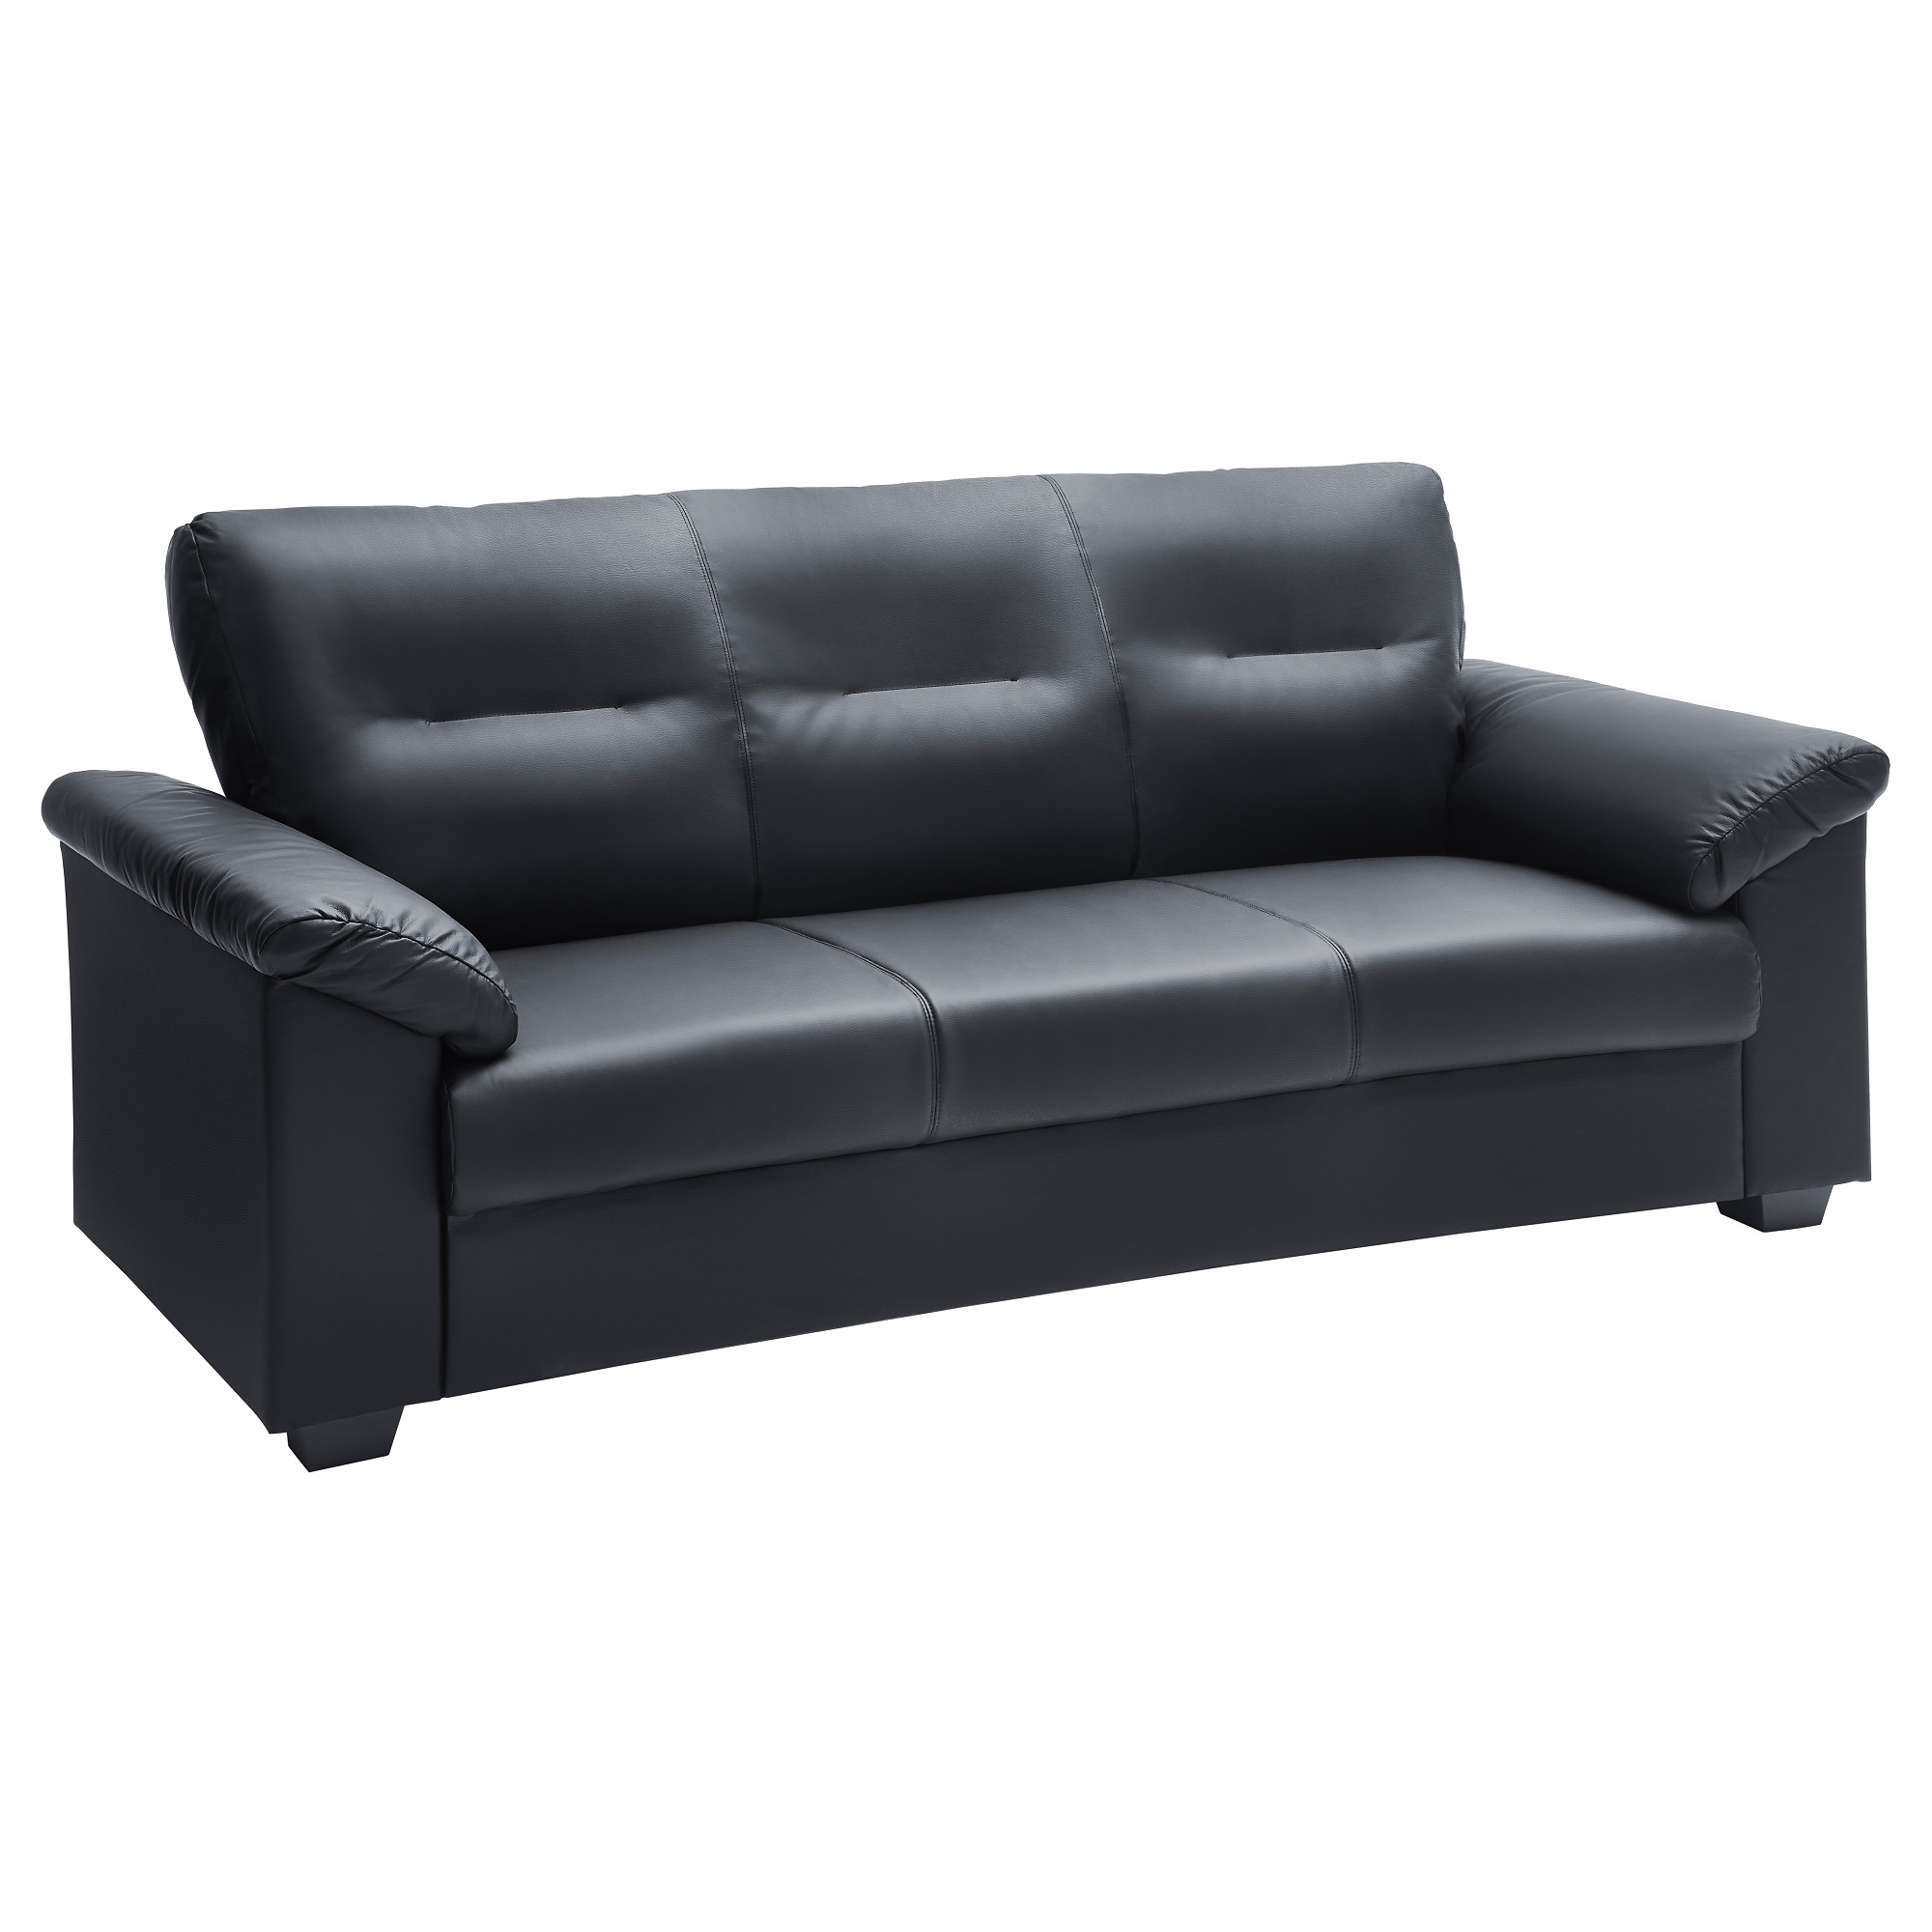 Knislinge Sofa – Ikea Pertaining To Most Up To Date Kingston Ontario Sectional Sofas (View 12 of 20)